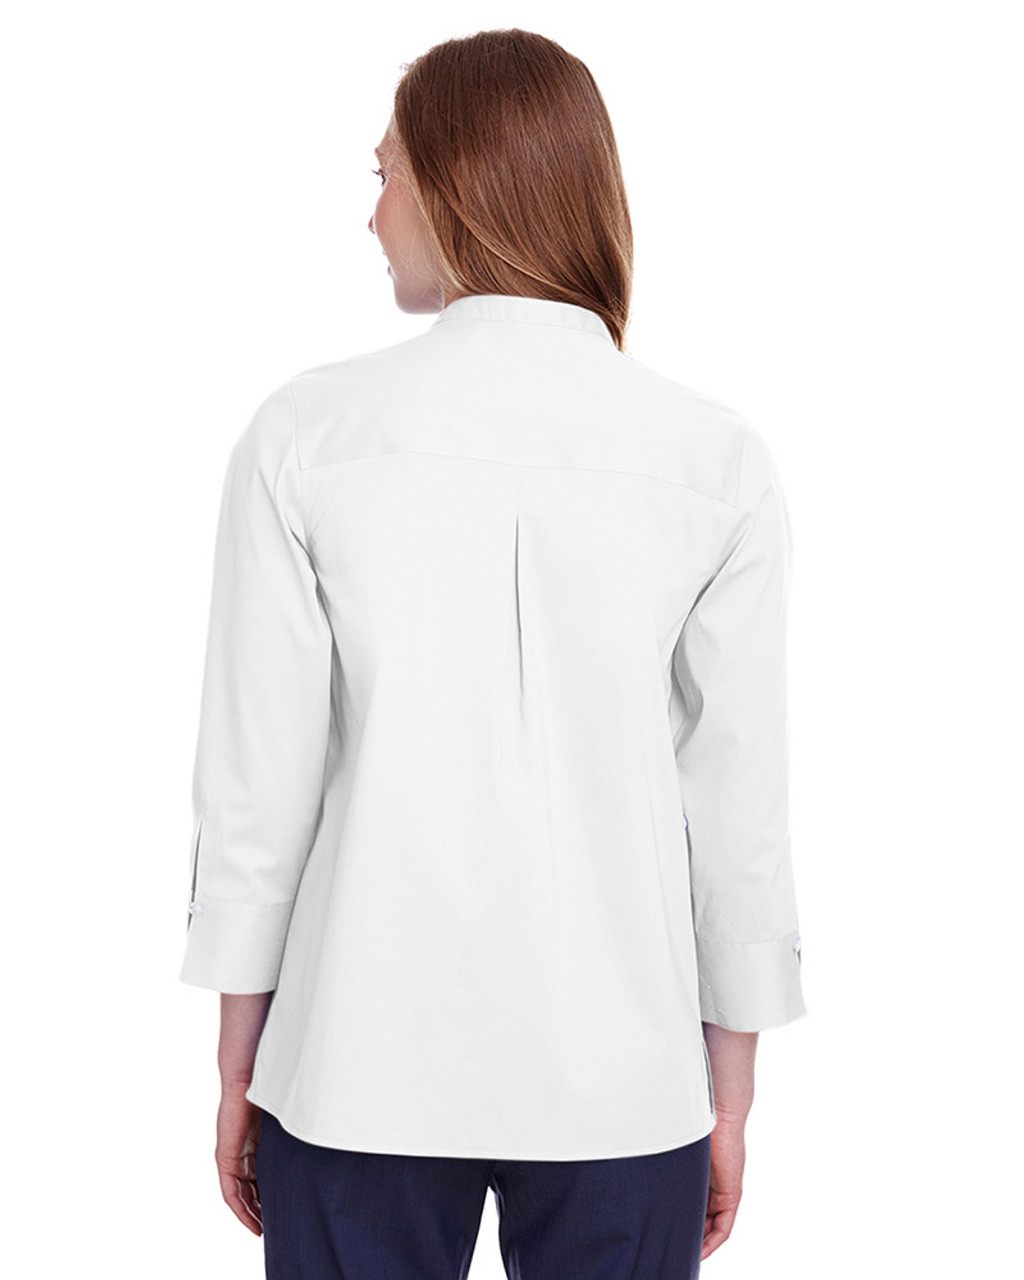 White - back, DG560W Devon & Jones Ladies' Crown Collection™ Stretch Broadcloth 3/4 Sleeve Blouse | Blankclothing.ca